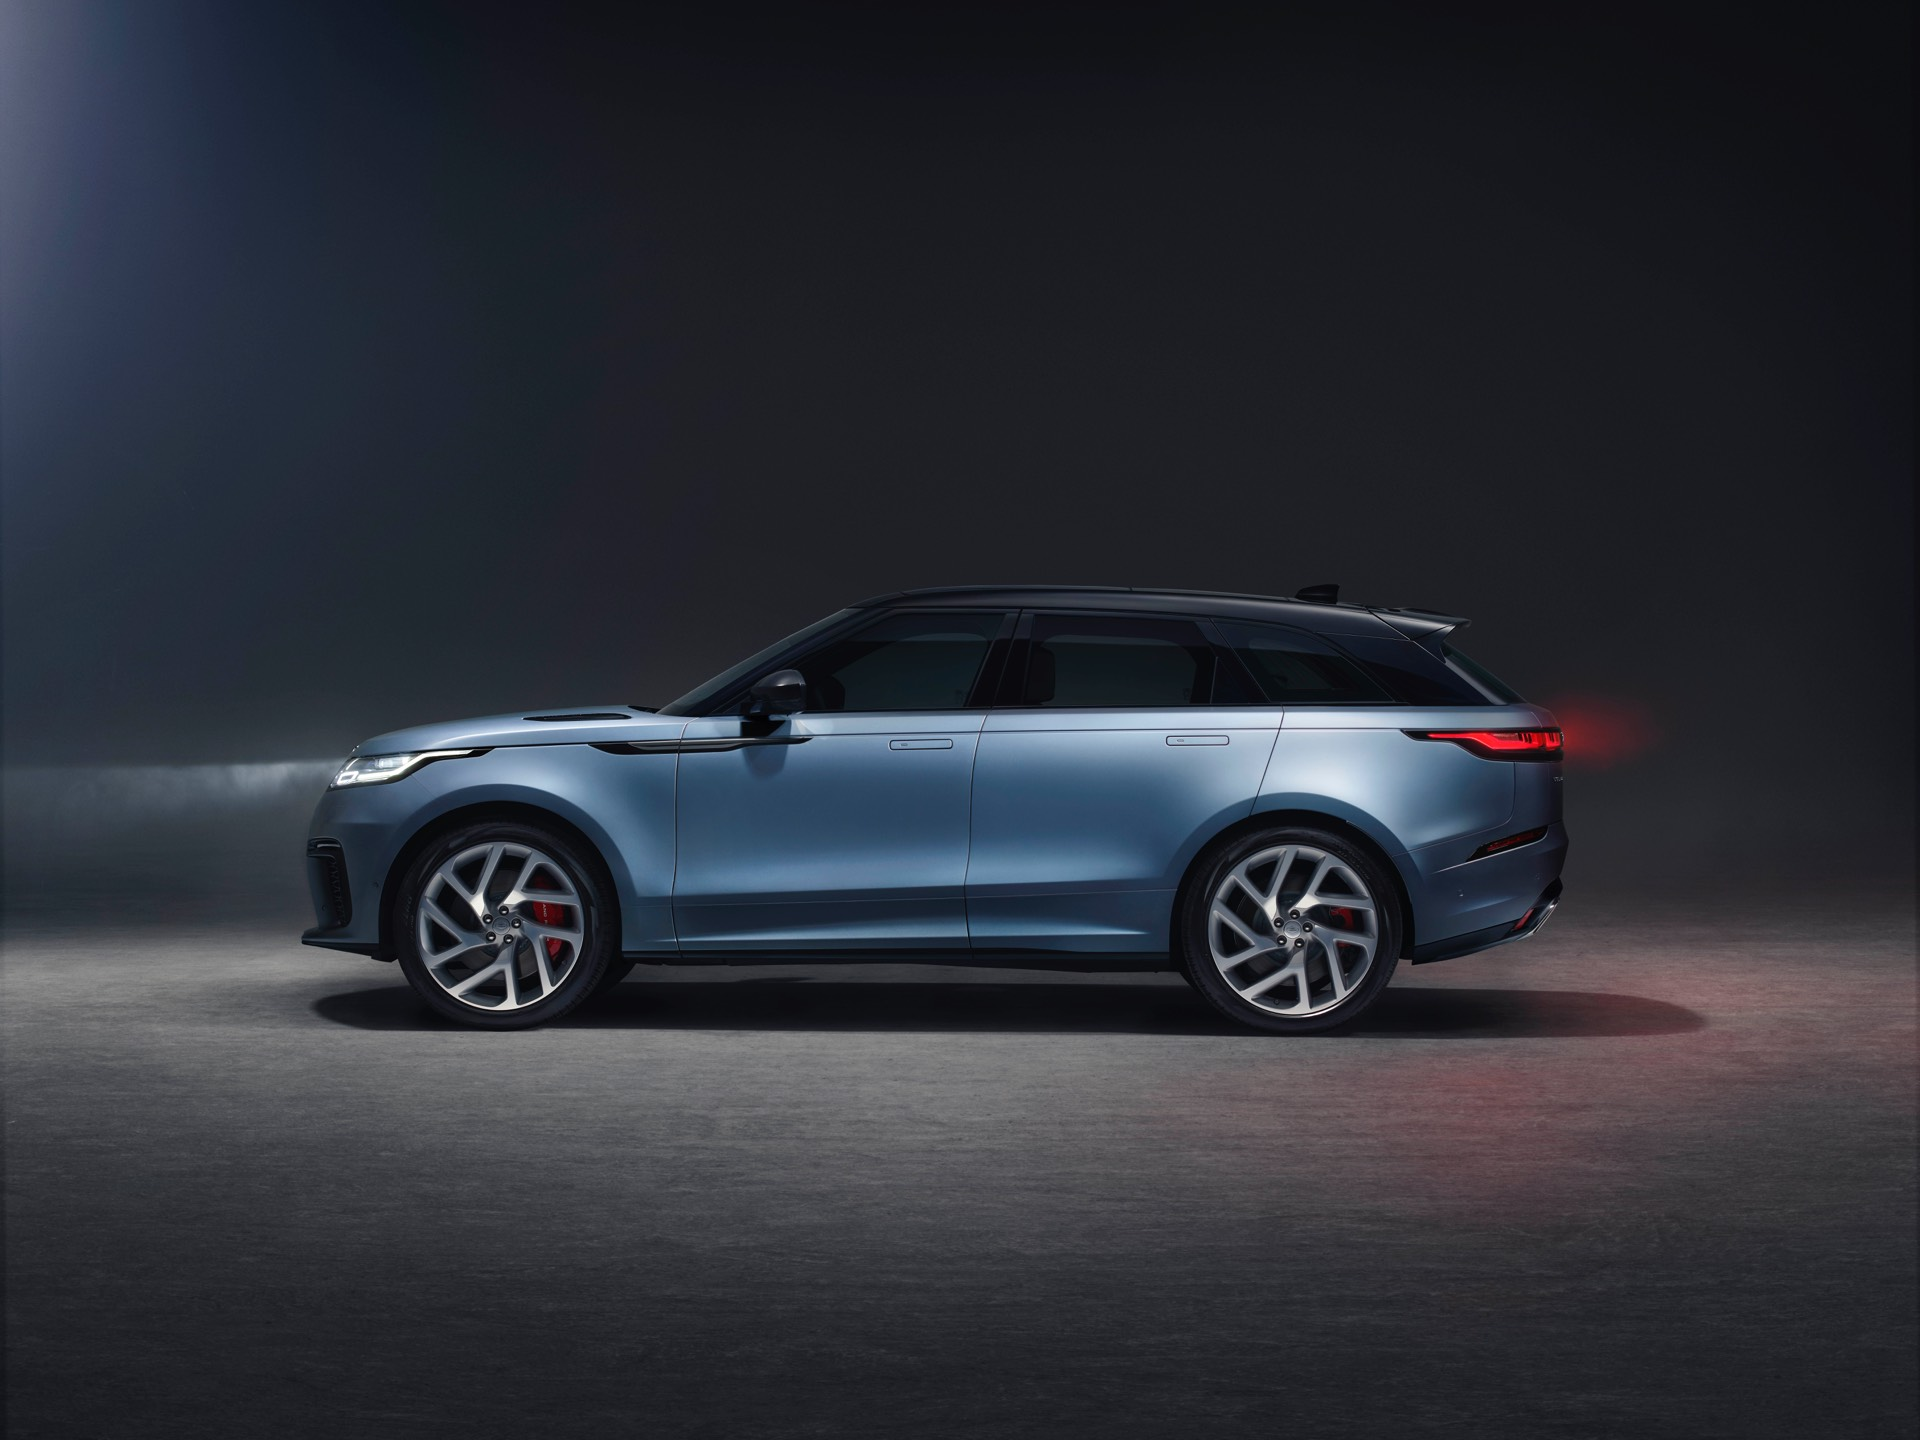 Range Rover Velar SVAutobiography Dynamic Edition Rear Side